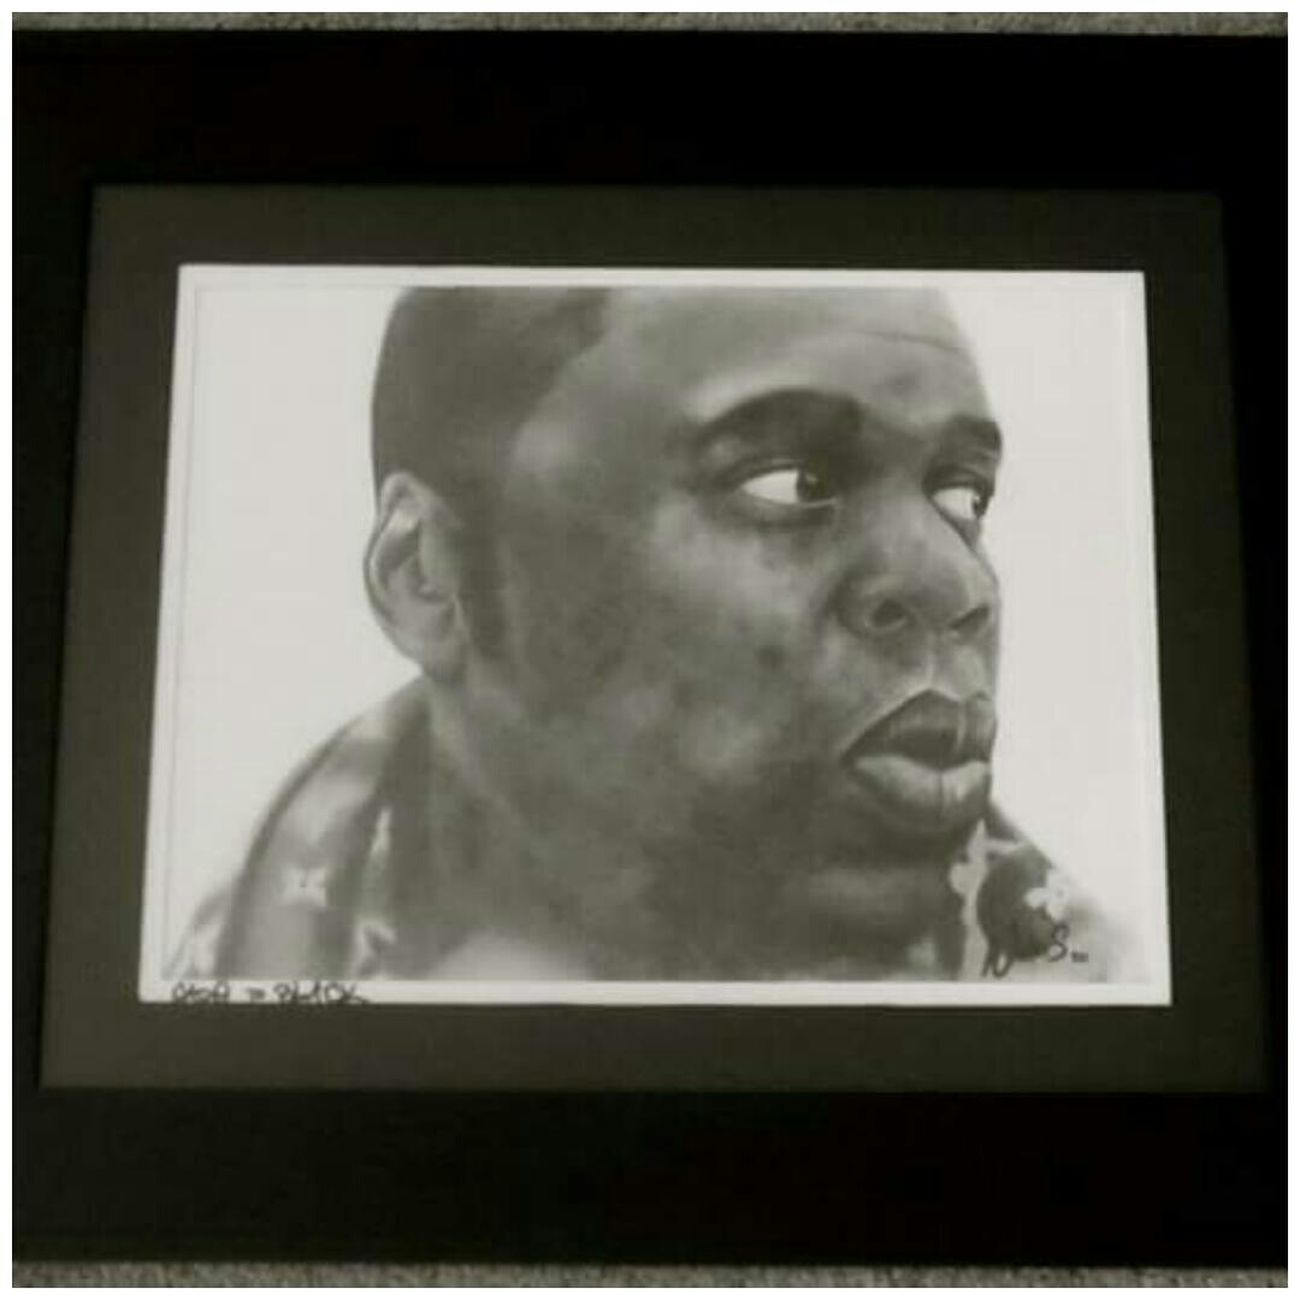 ArtWork Portraits Art, Drawing, Creativity Jay-Z  Jayz HipHop Art Pencil Portrait Pencildrawing Pencil Drawing